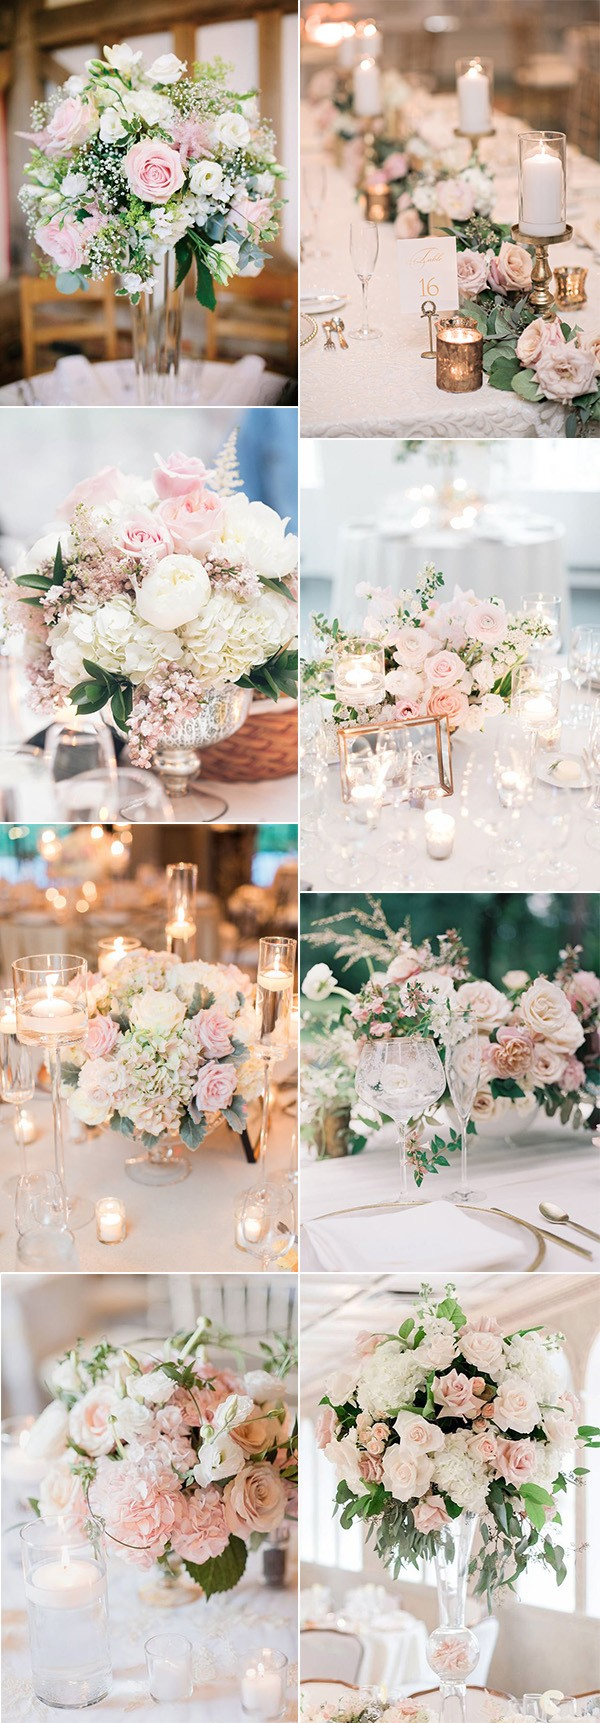 elegant blush pink wedding centerpieces for 2019